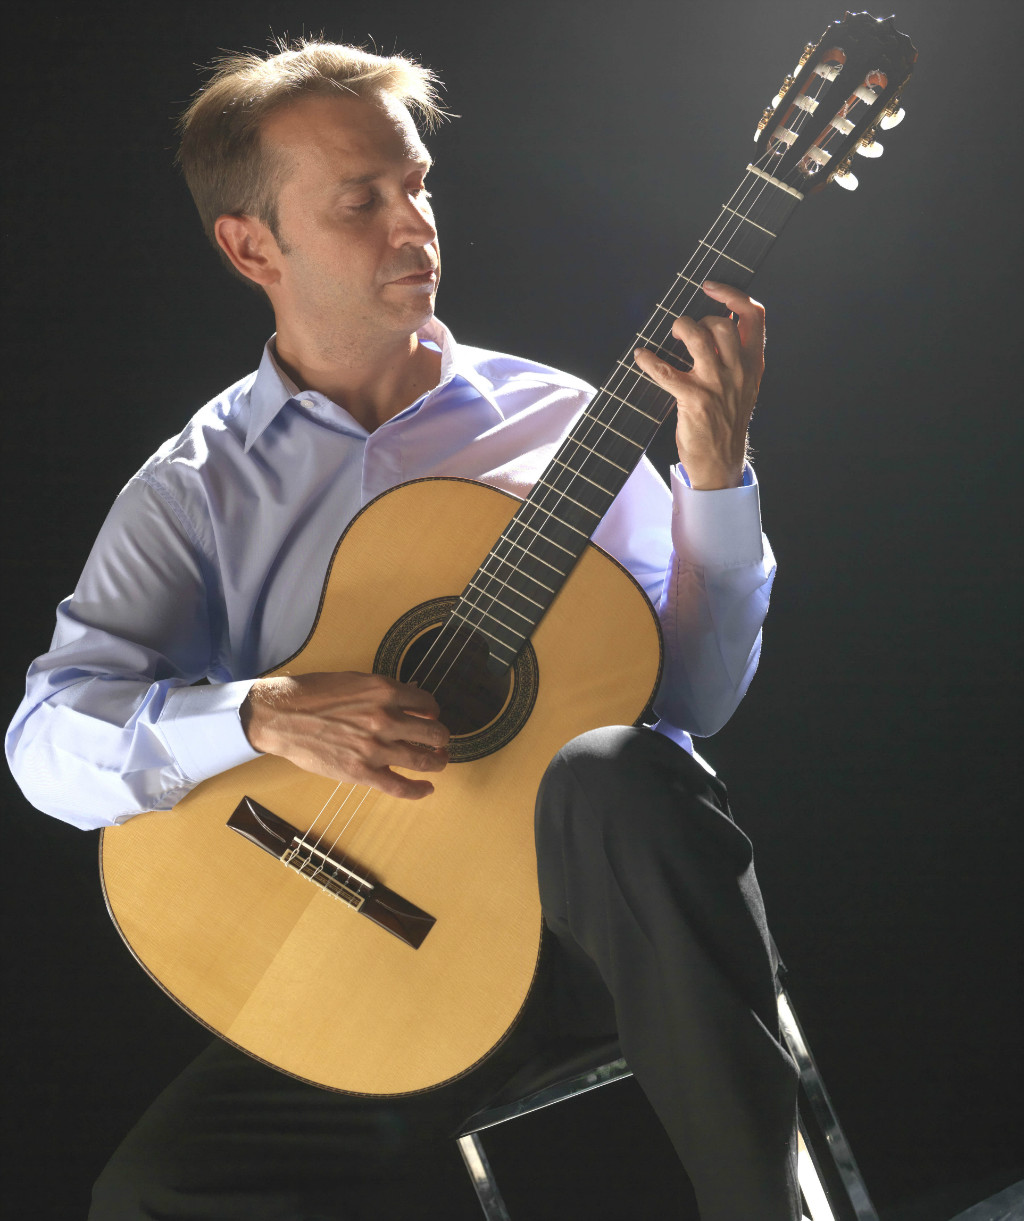 What's the correct posture for playing the guitar?